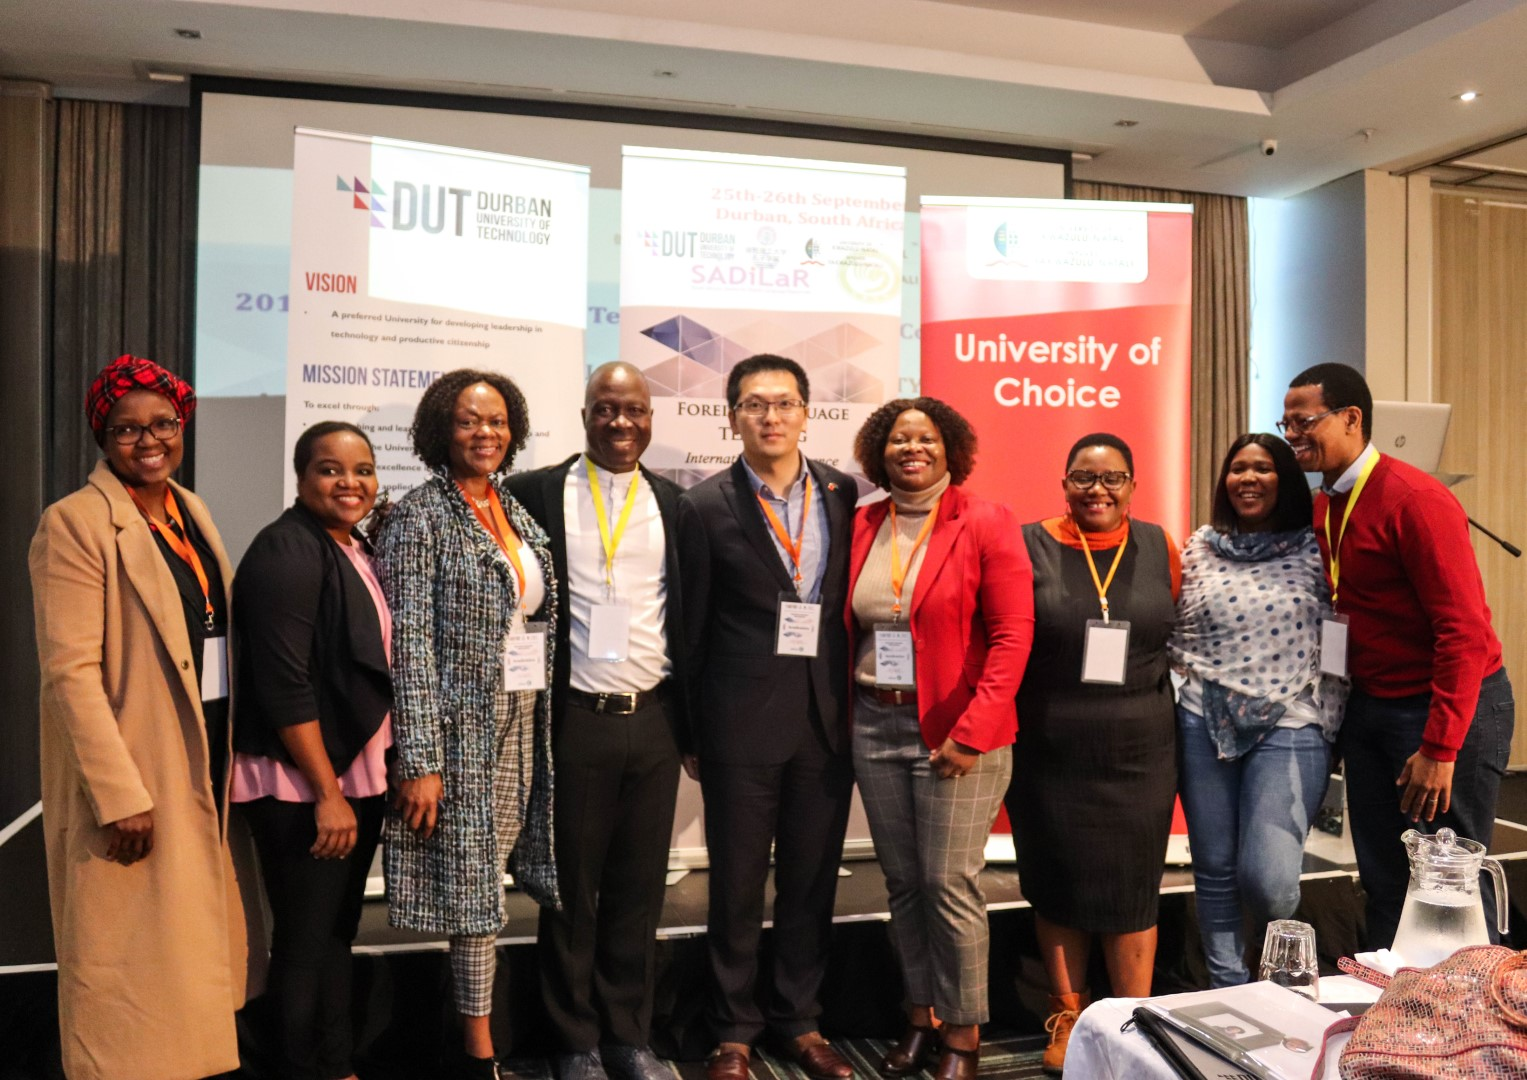 UKZN Co-Hosts Foreign Language Teaching International Conference